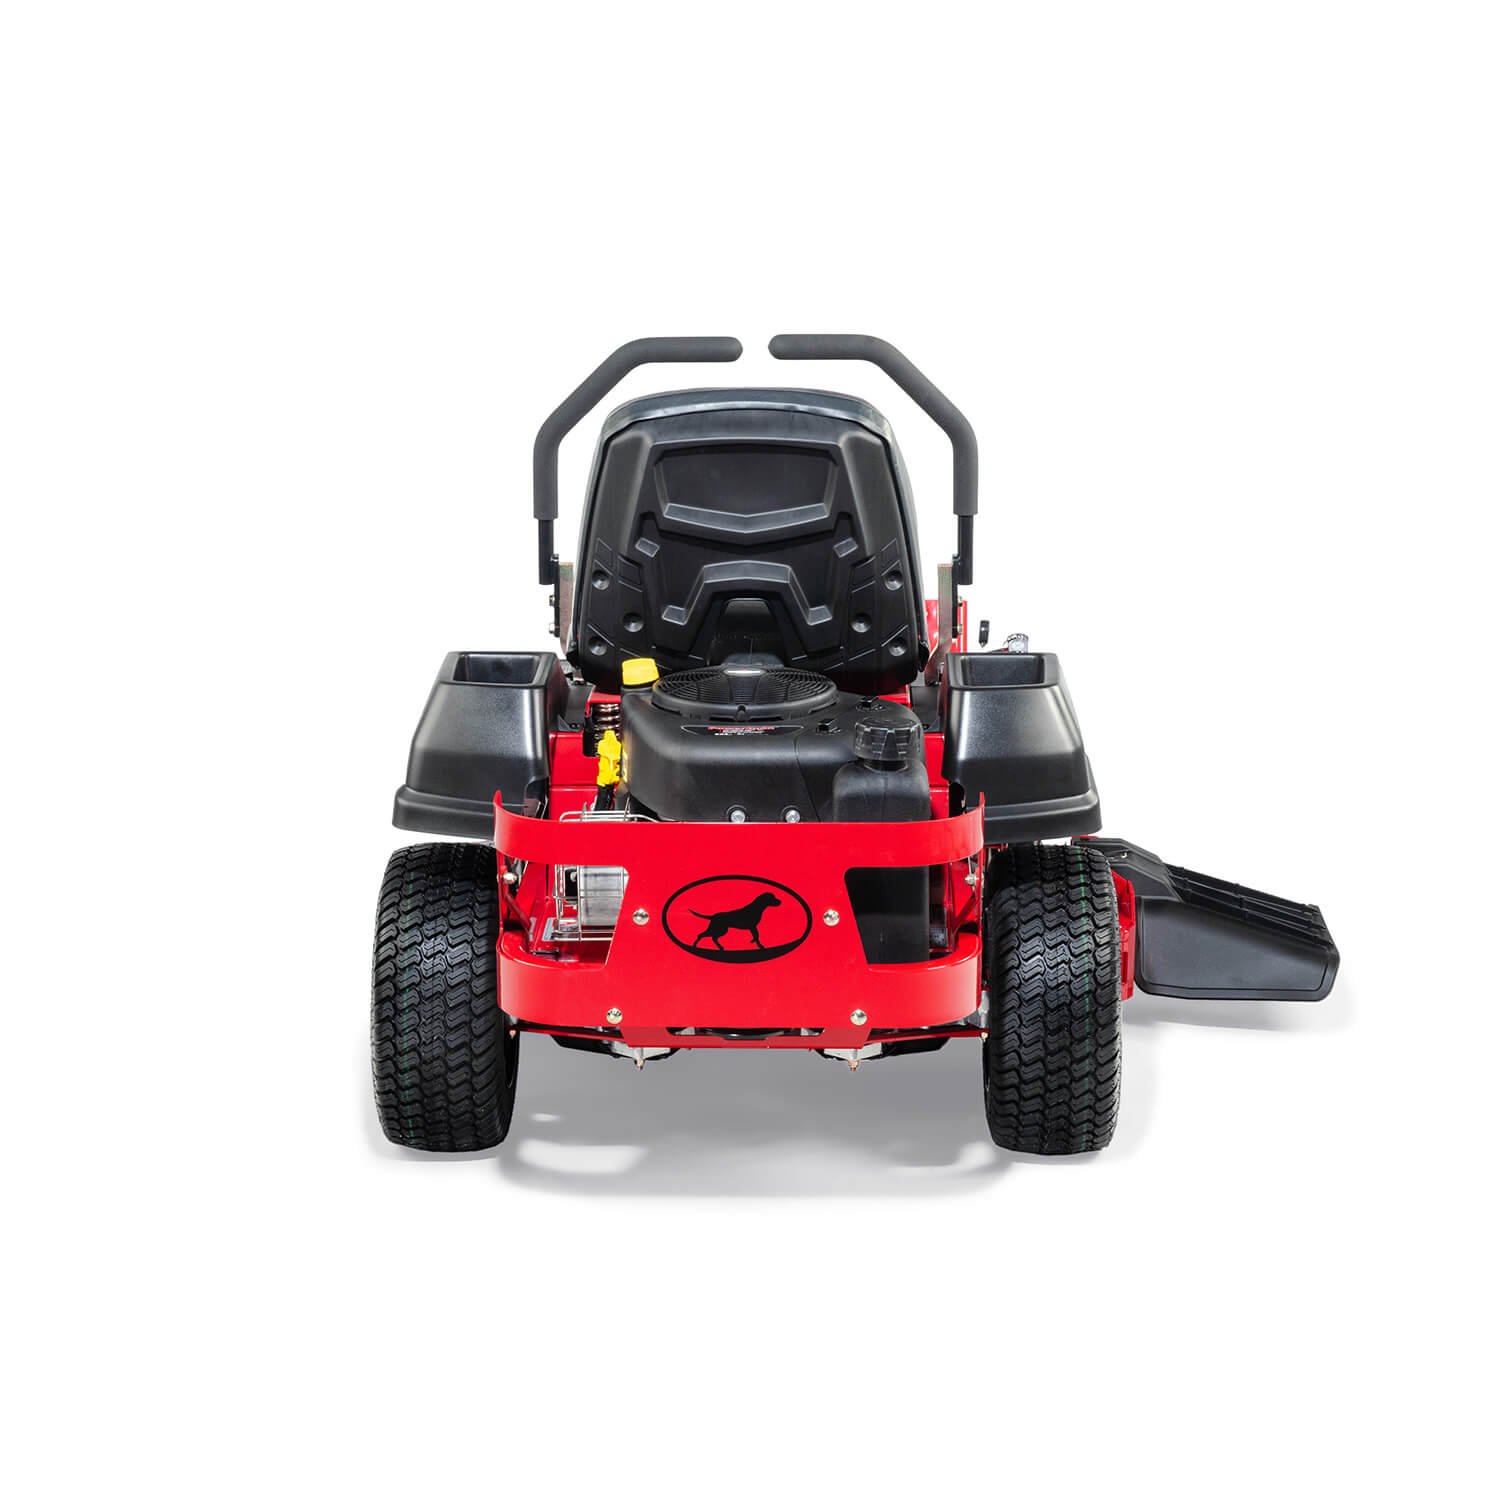 Image of the rear of a red mower showing the engine